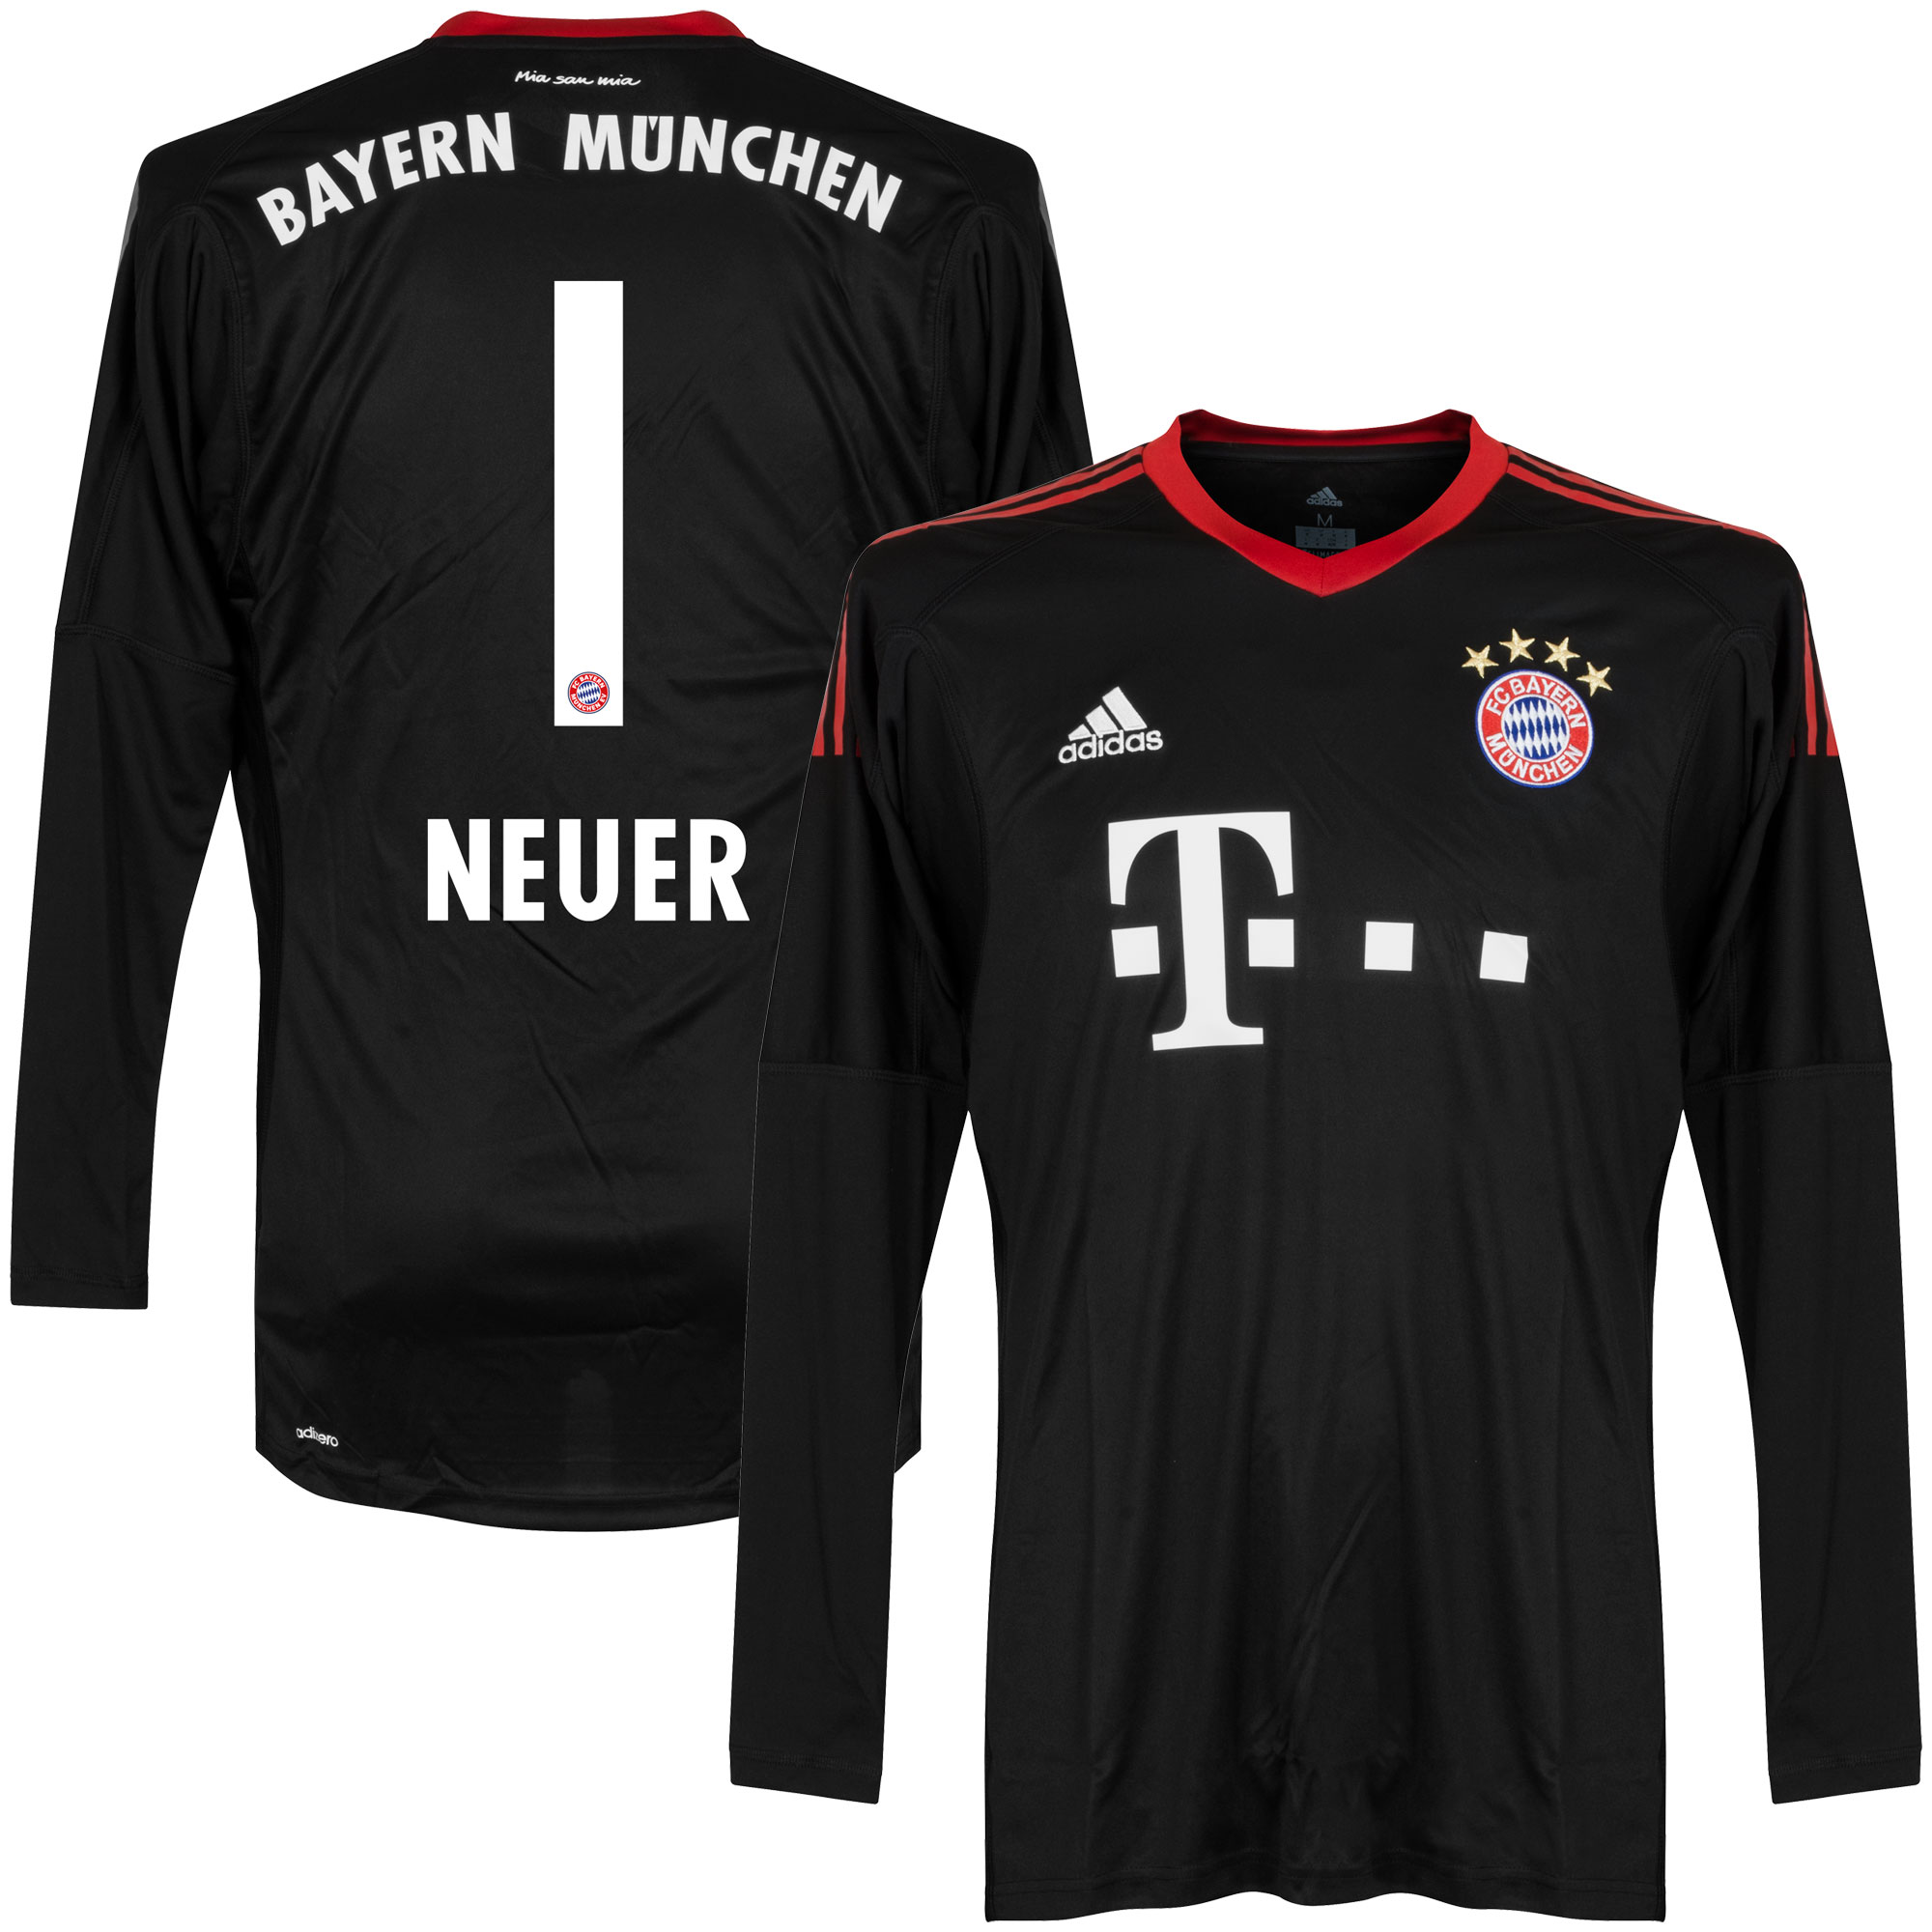 Bayern Munich Home Neuer Goalkeeper Jersey 2017 / 2018 (Official Printing) - 54